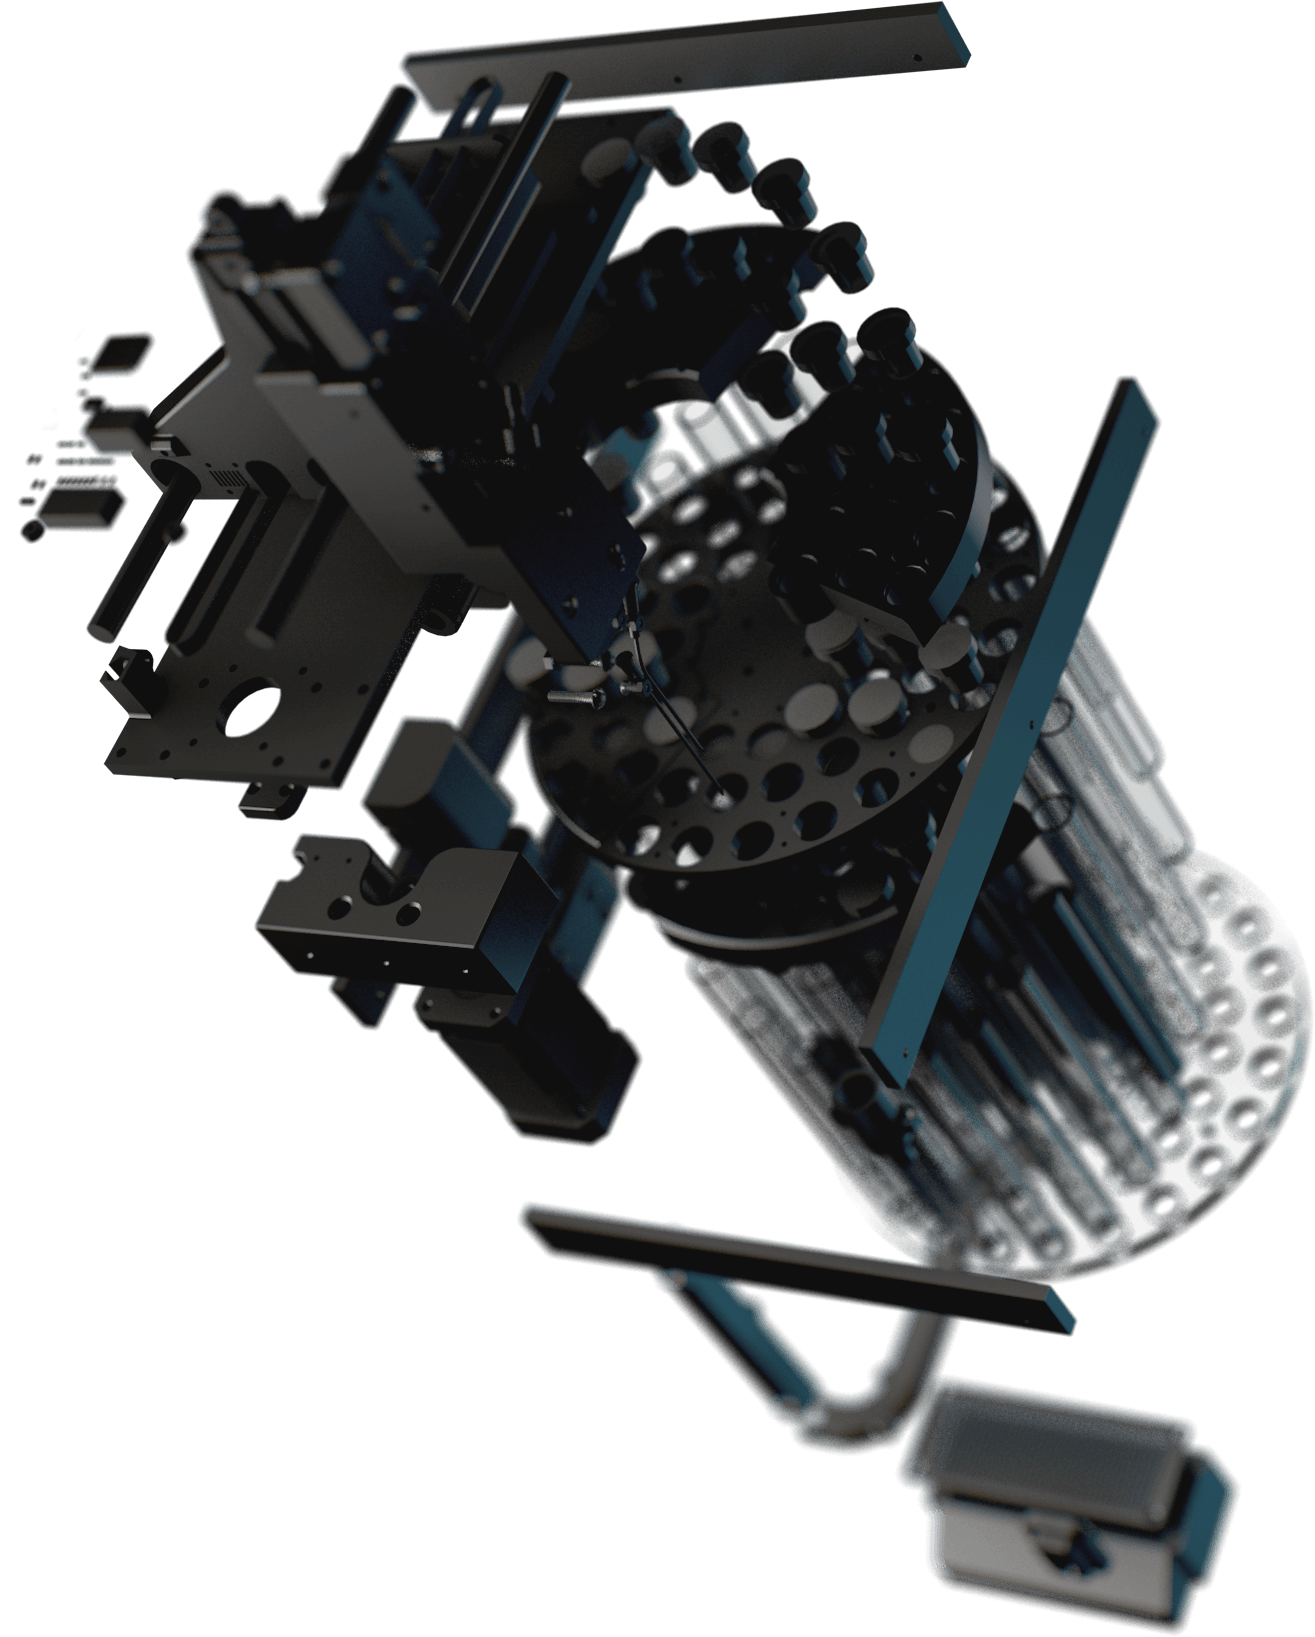 3D render of autosampler device with exploded geometry.